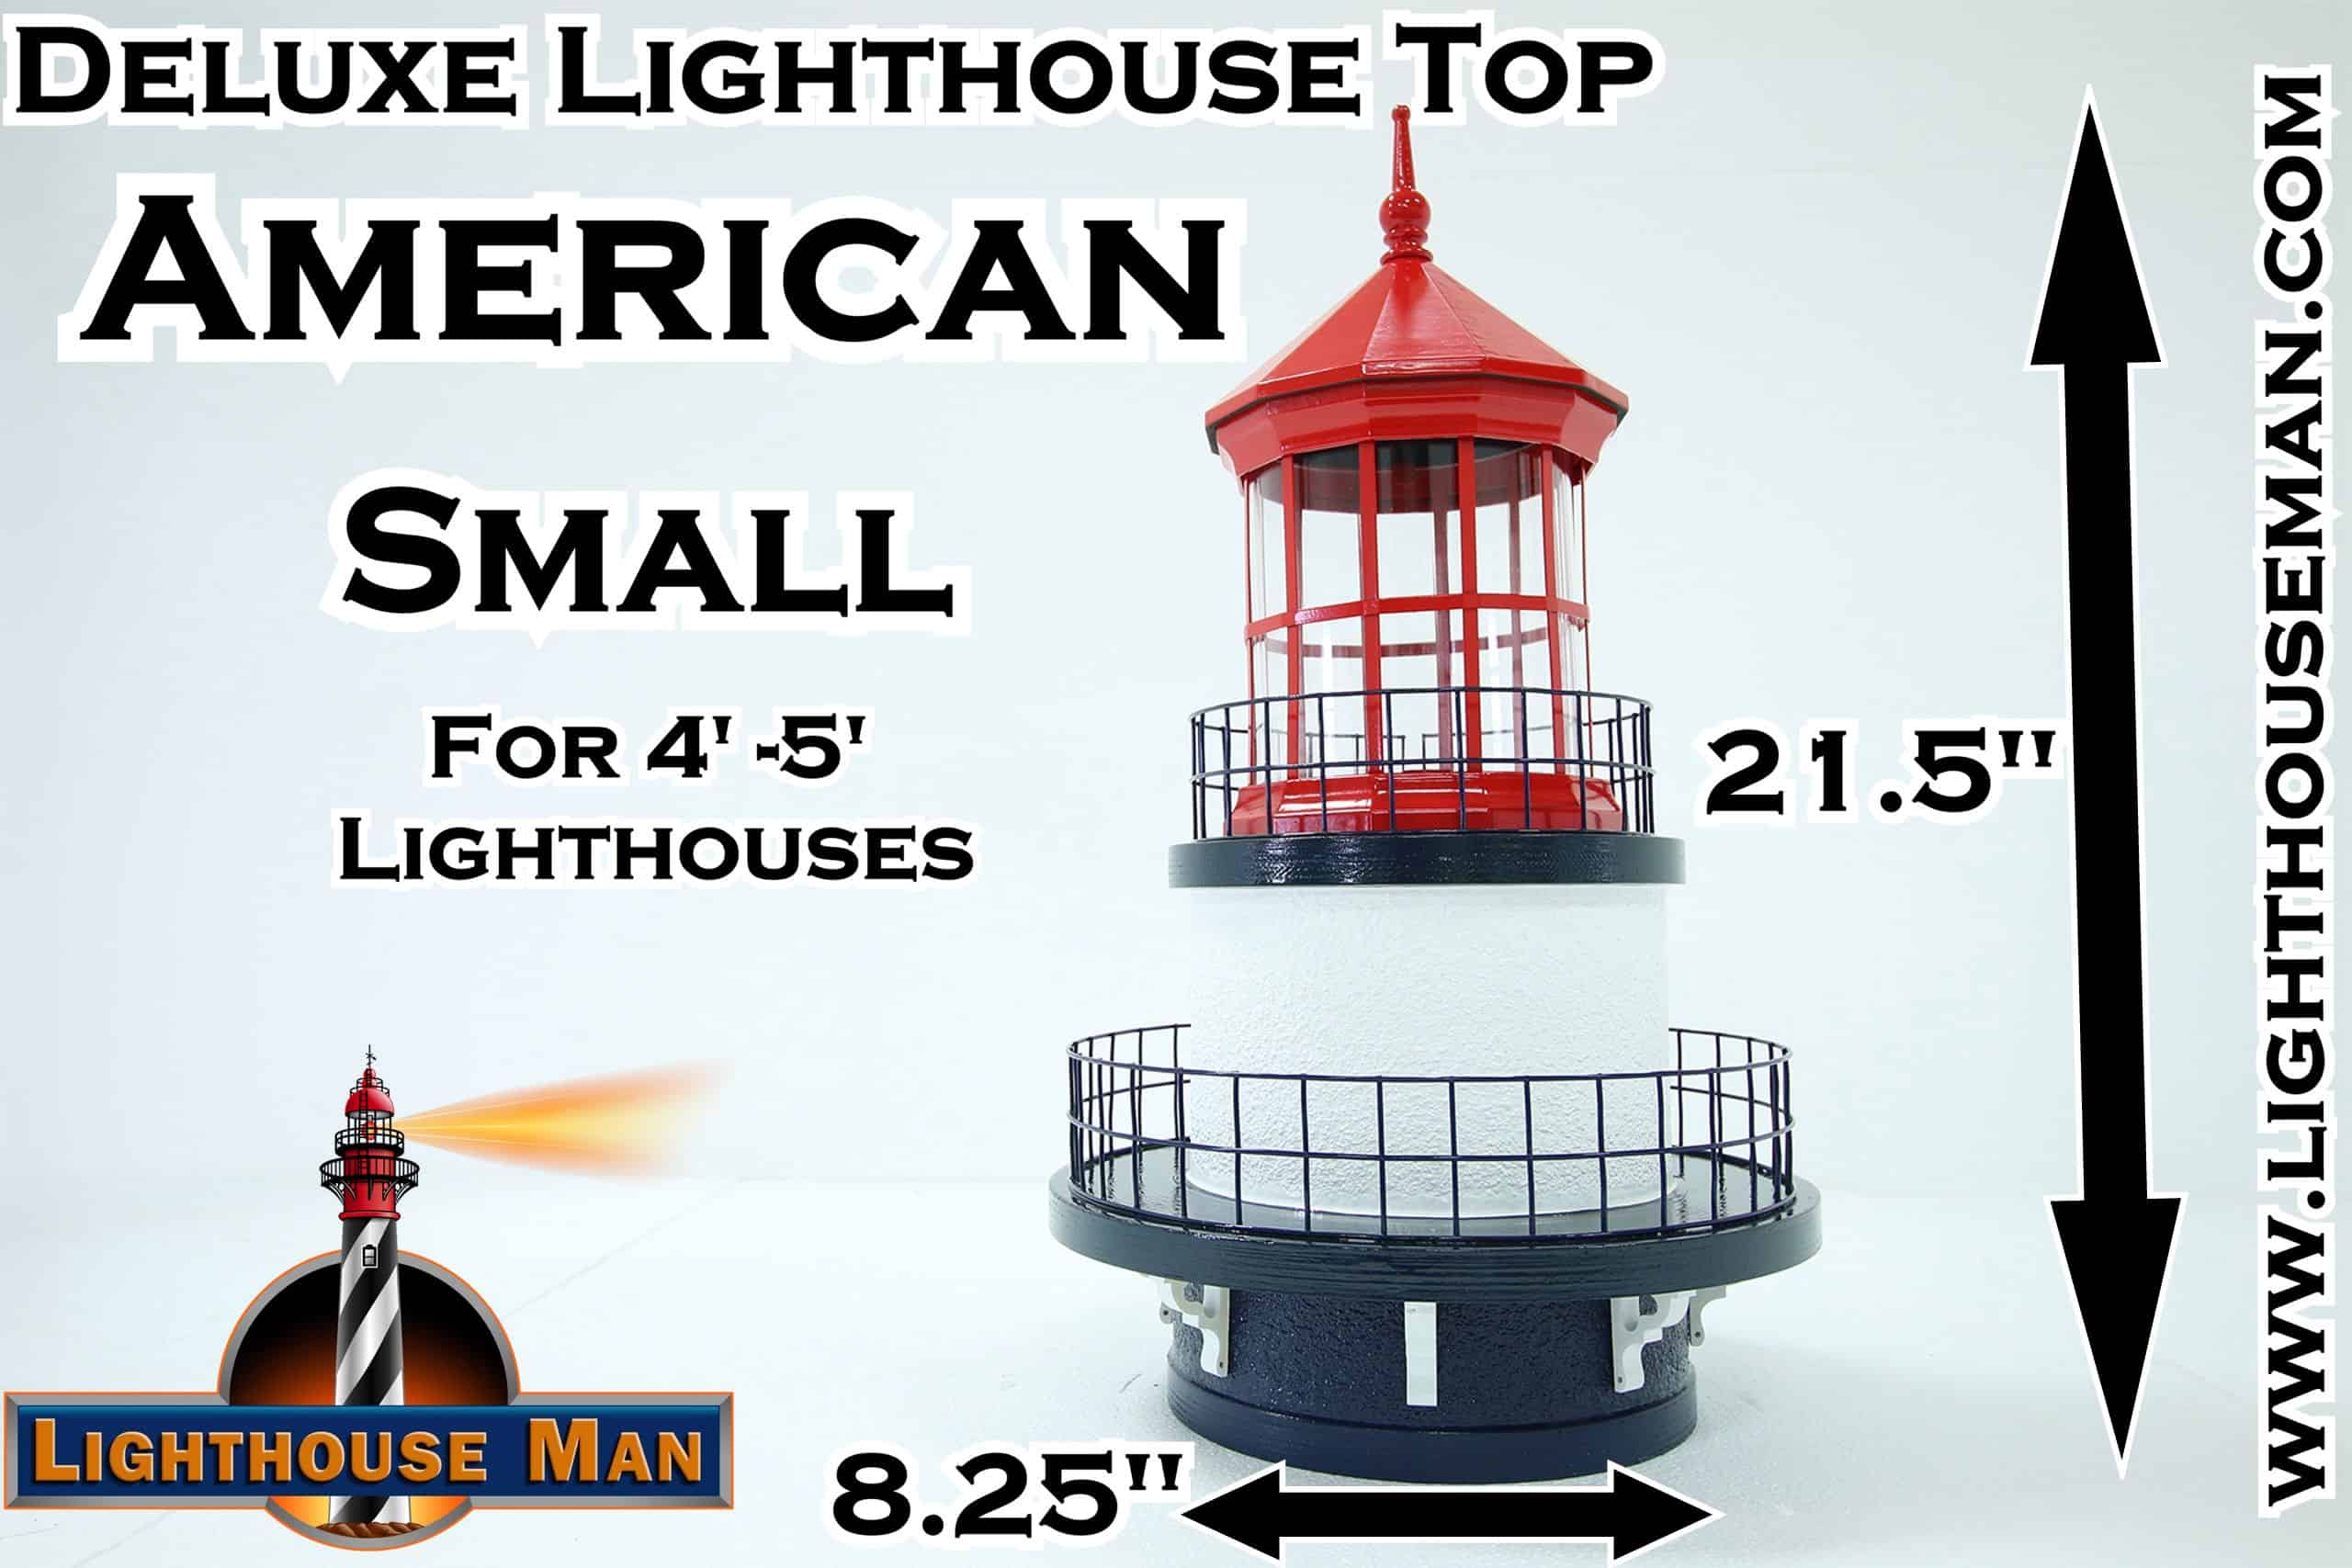 Deluxe Small American Lighthouse Top